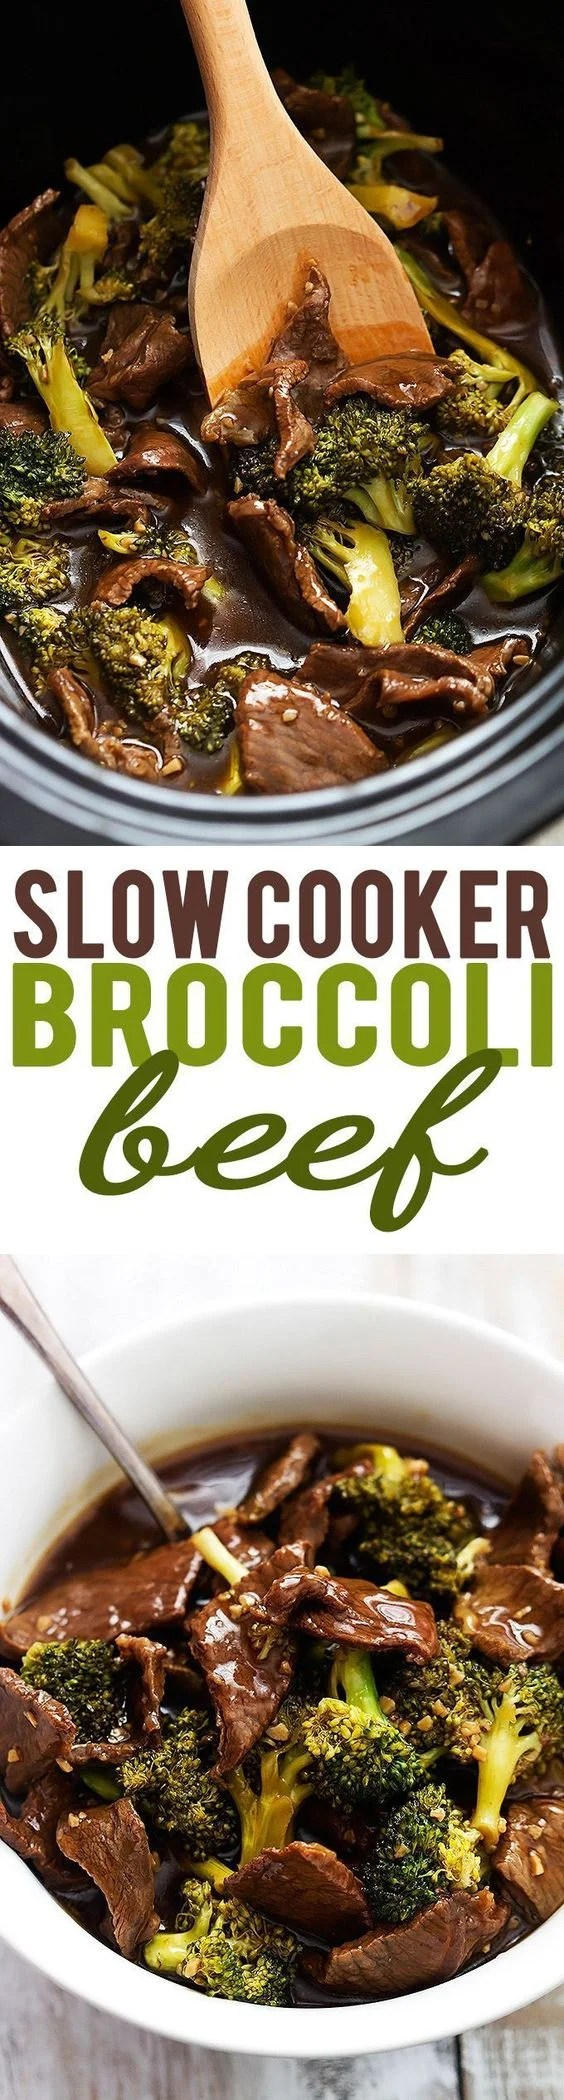 These 24 Crock Pot Recipes Are So Easy & DELICIOUS! I love how much money and time can be saved by using a slow cooker!